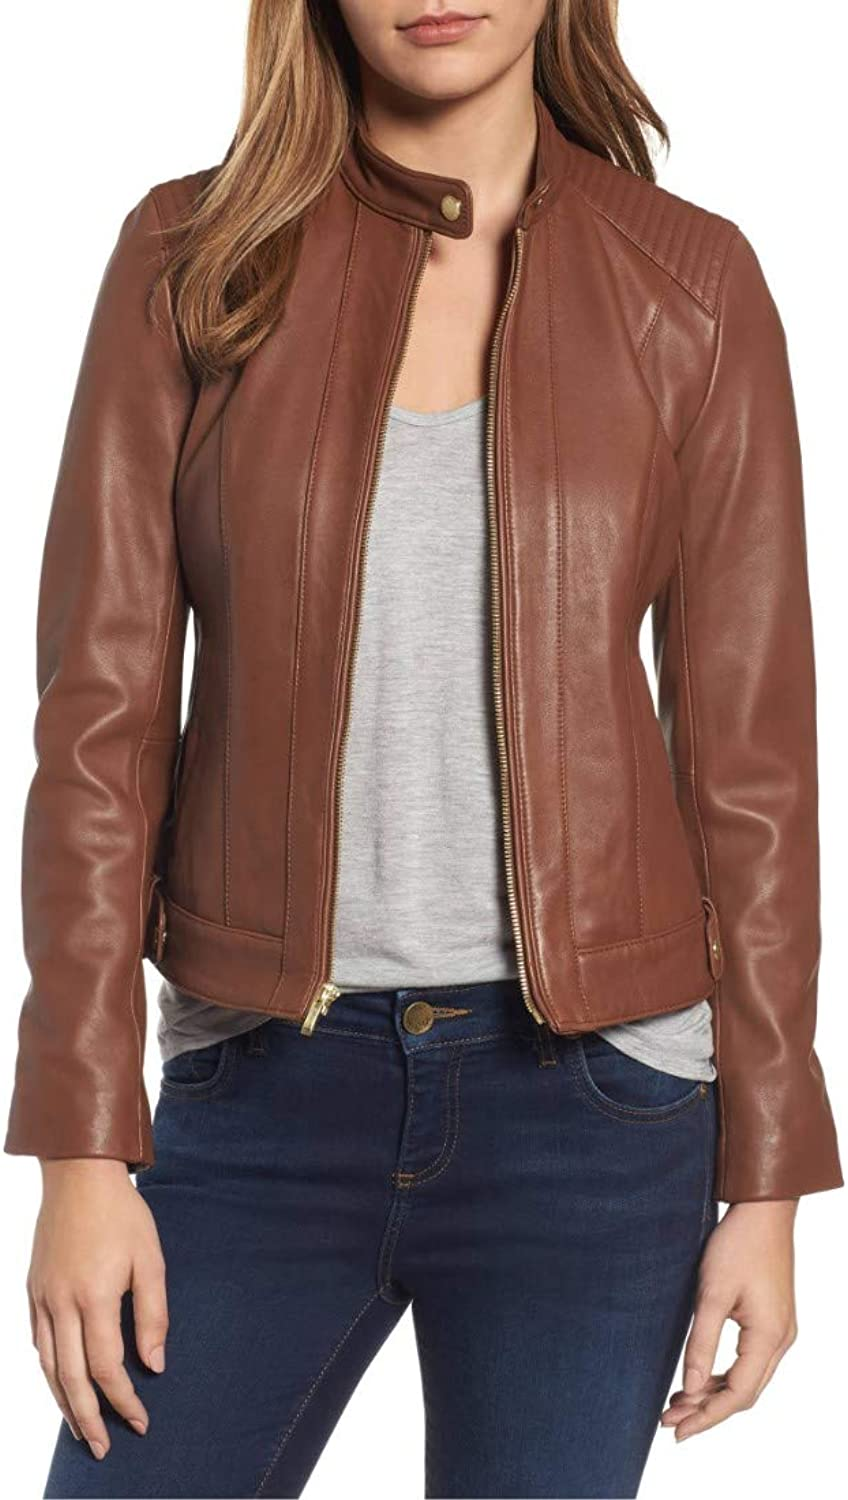 Dillo Leather Motorcycle Bomber Biker Brown Real Leather Jacket for Women